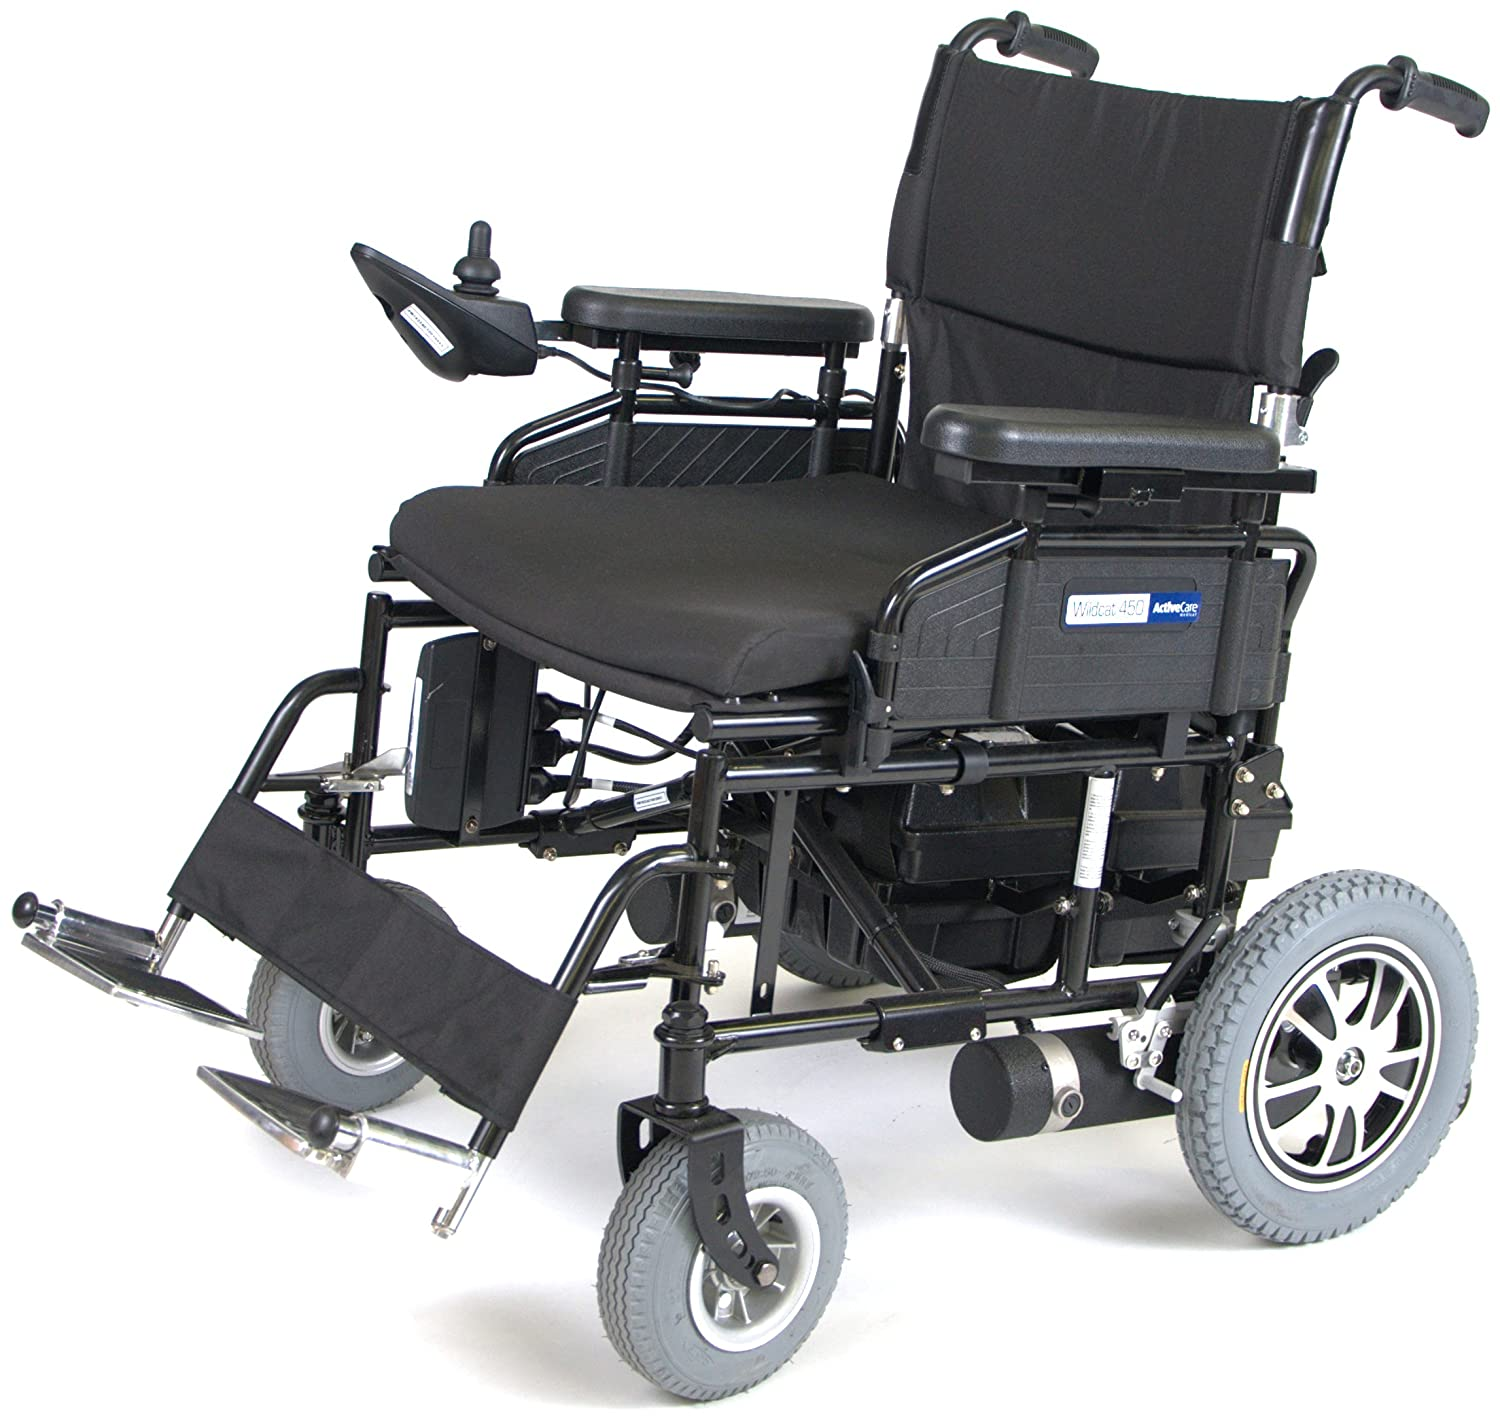 Wildcat 450 Heavy Duty Folding Power Wheelchair Health Personal Care Price Crutches Wheelchairs